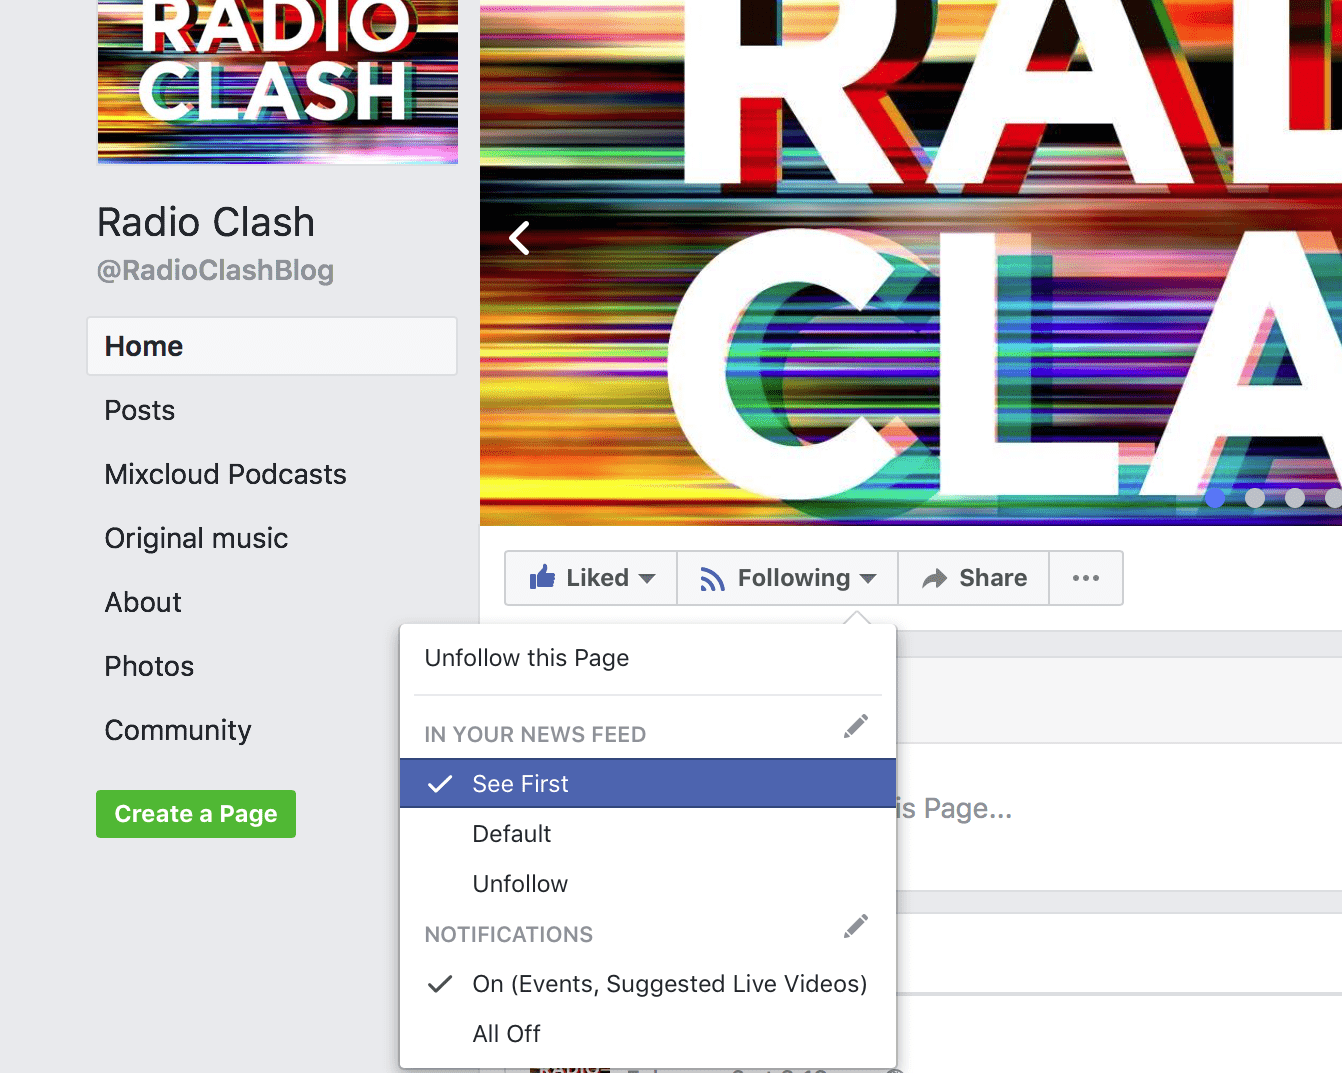 You are feeling sleeeeepy...you are subscribing to Radio Clash...you are then clicking 'See first'...you are giving me your credit card number....